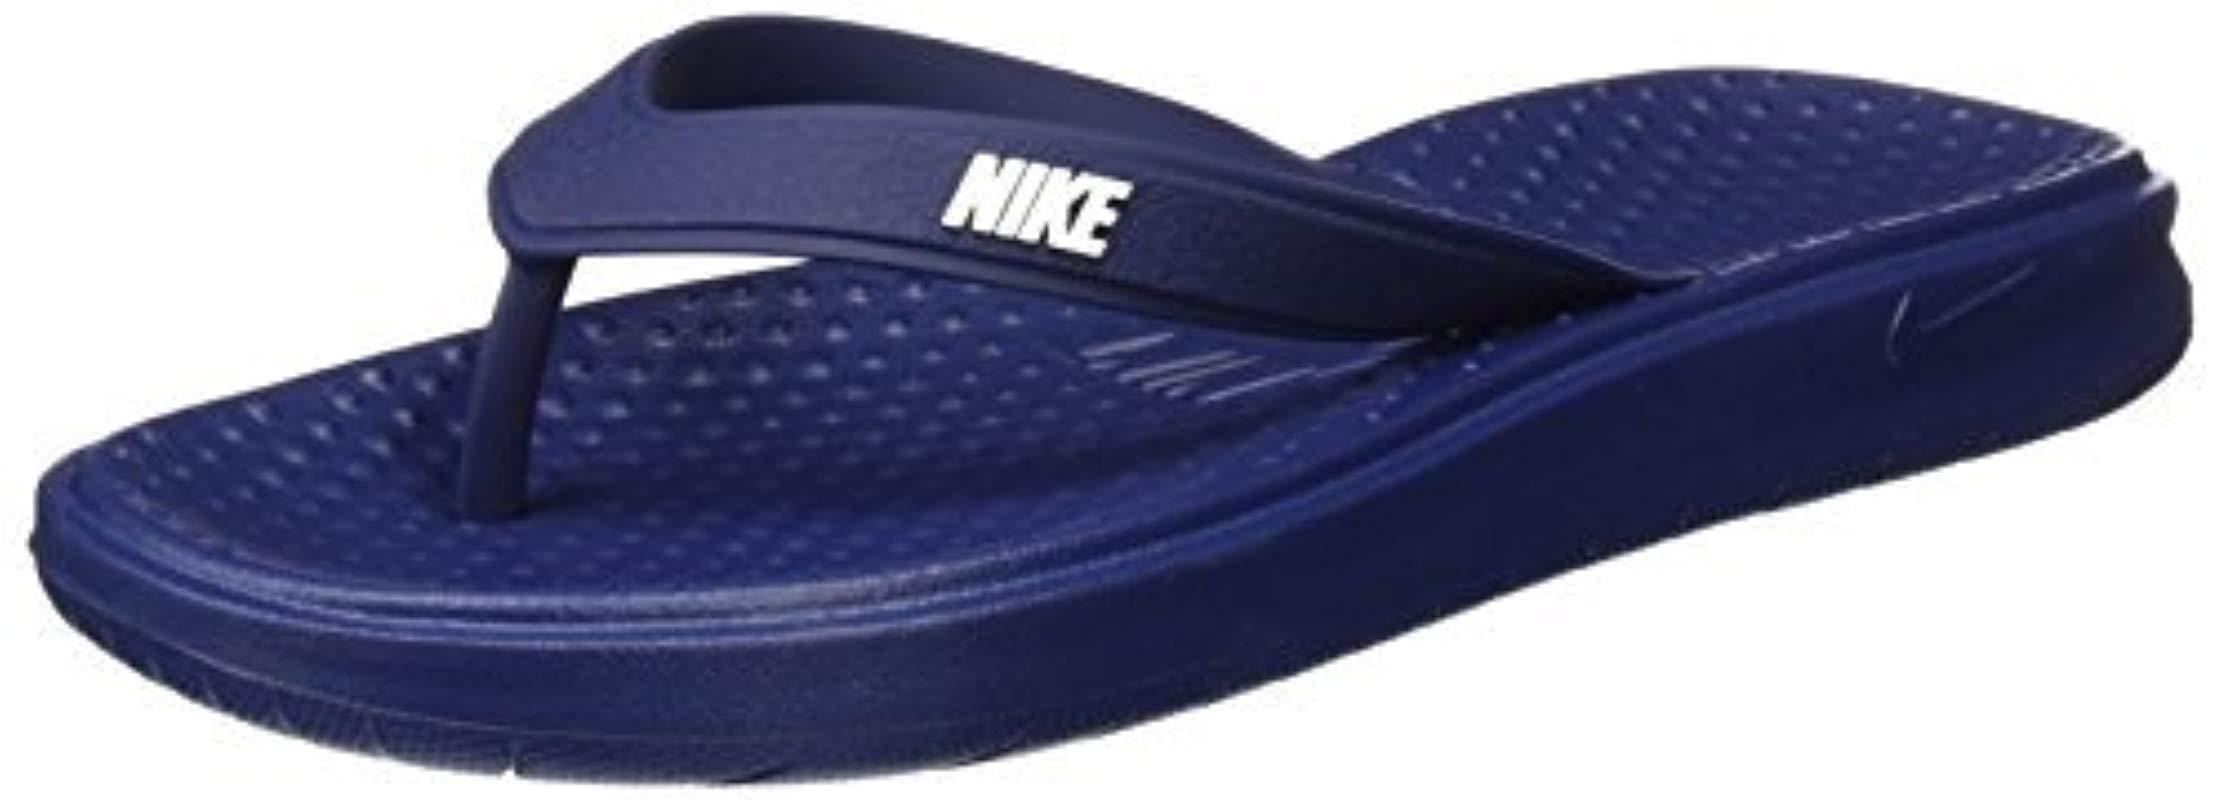 e665ffc7fb75 Lyst - Nike Solay Thong Sandal in Blue for Men